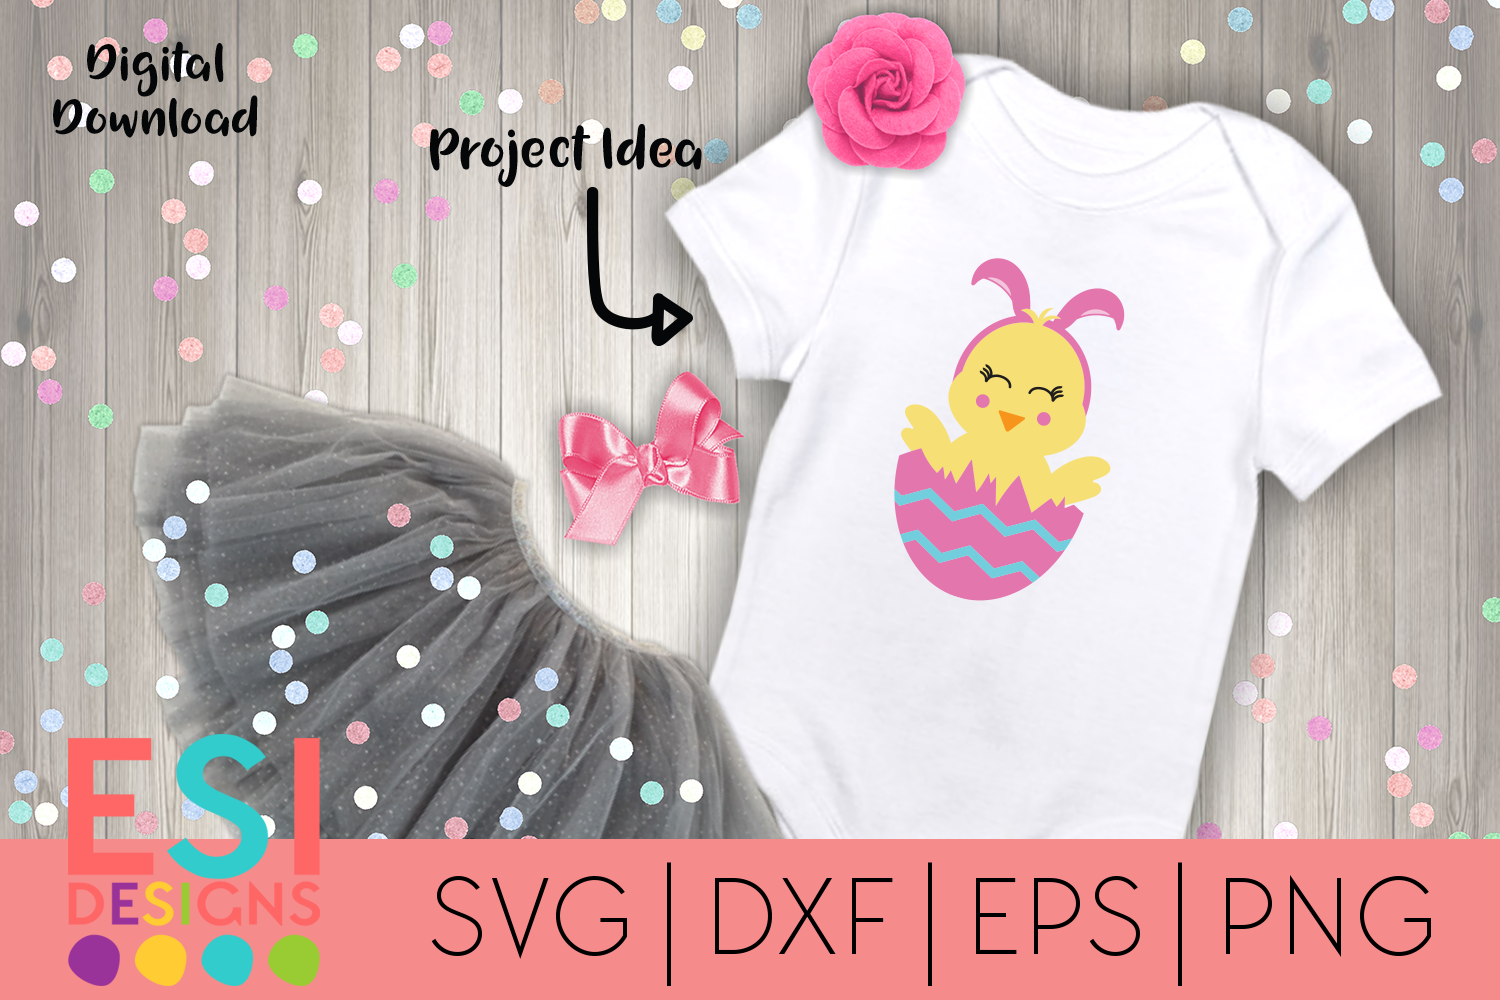 Easter | Cute Chick in Egg with Bunny Ears| SVG DXF EPS PNG example image 1